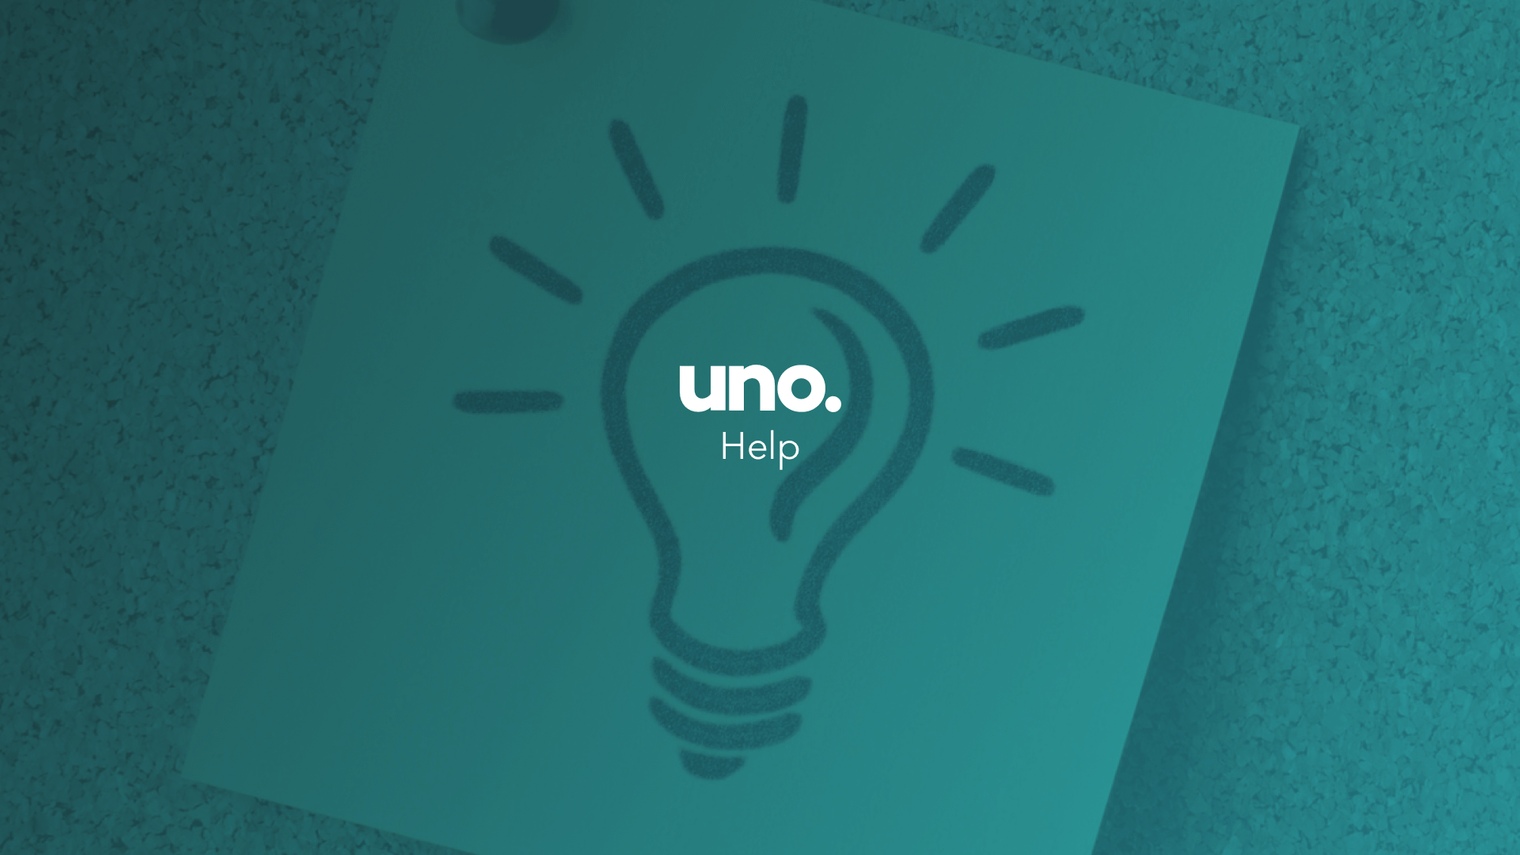 How is uno different from online comparison sites?